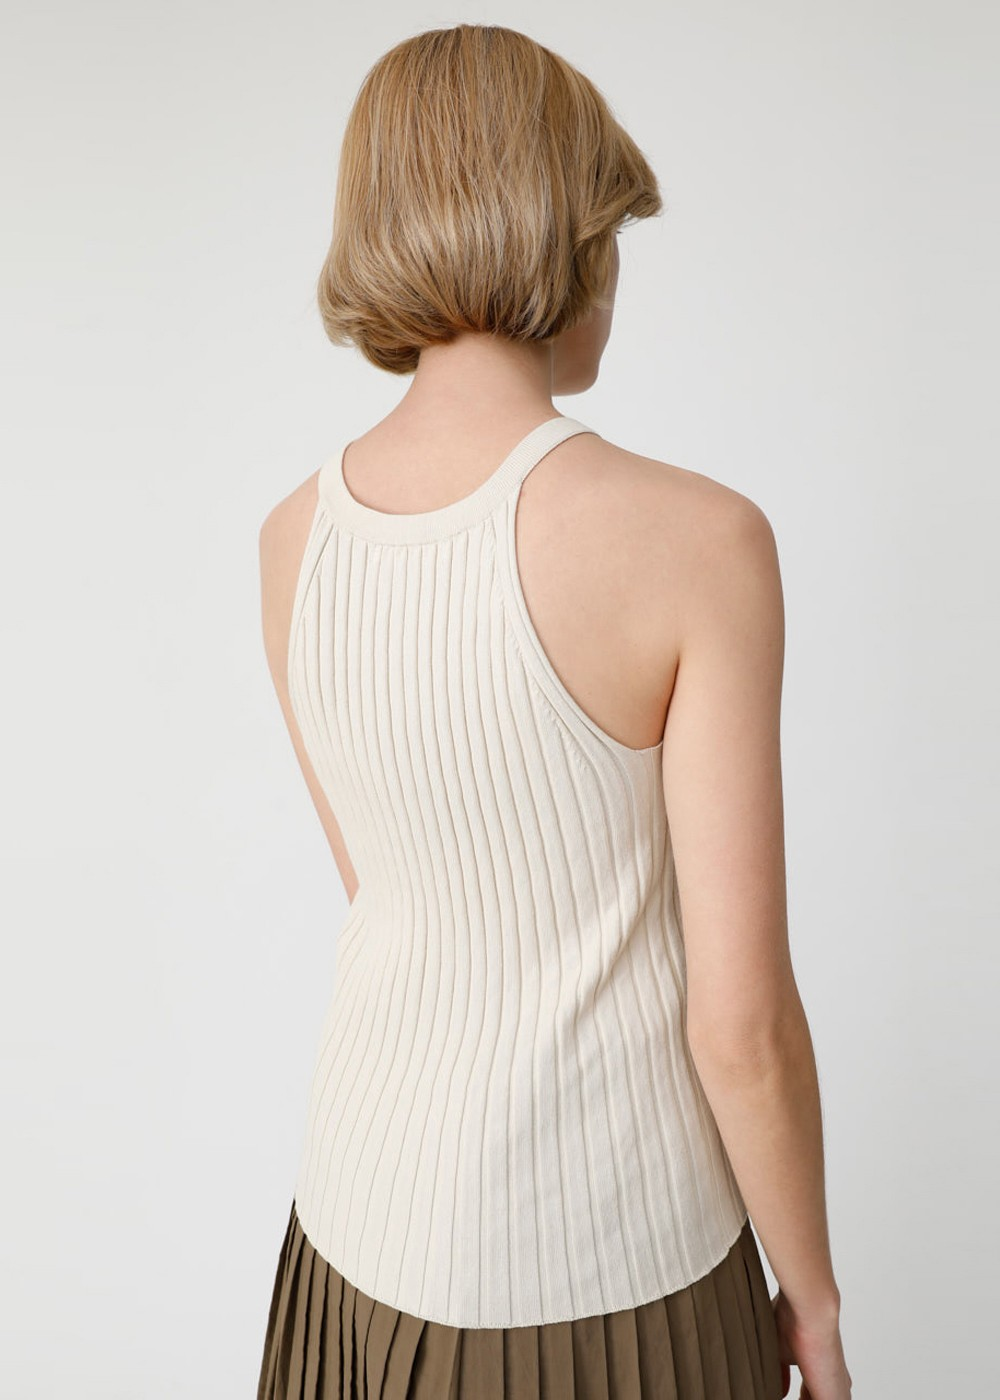 【最大70%OFF】RIB KNIT HALTER NECK TOP|IVOY|その他トップス|MOUSSY